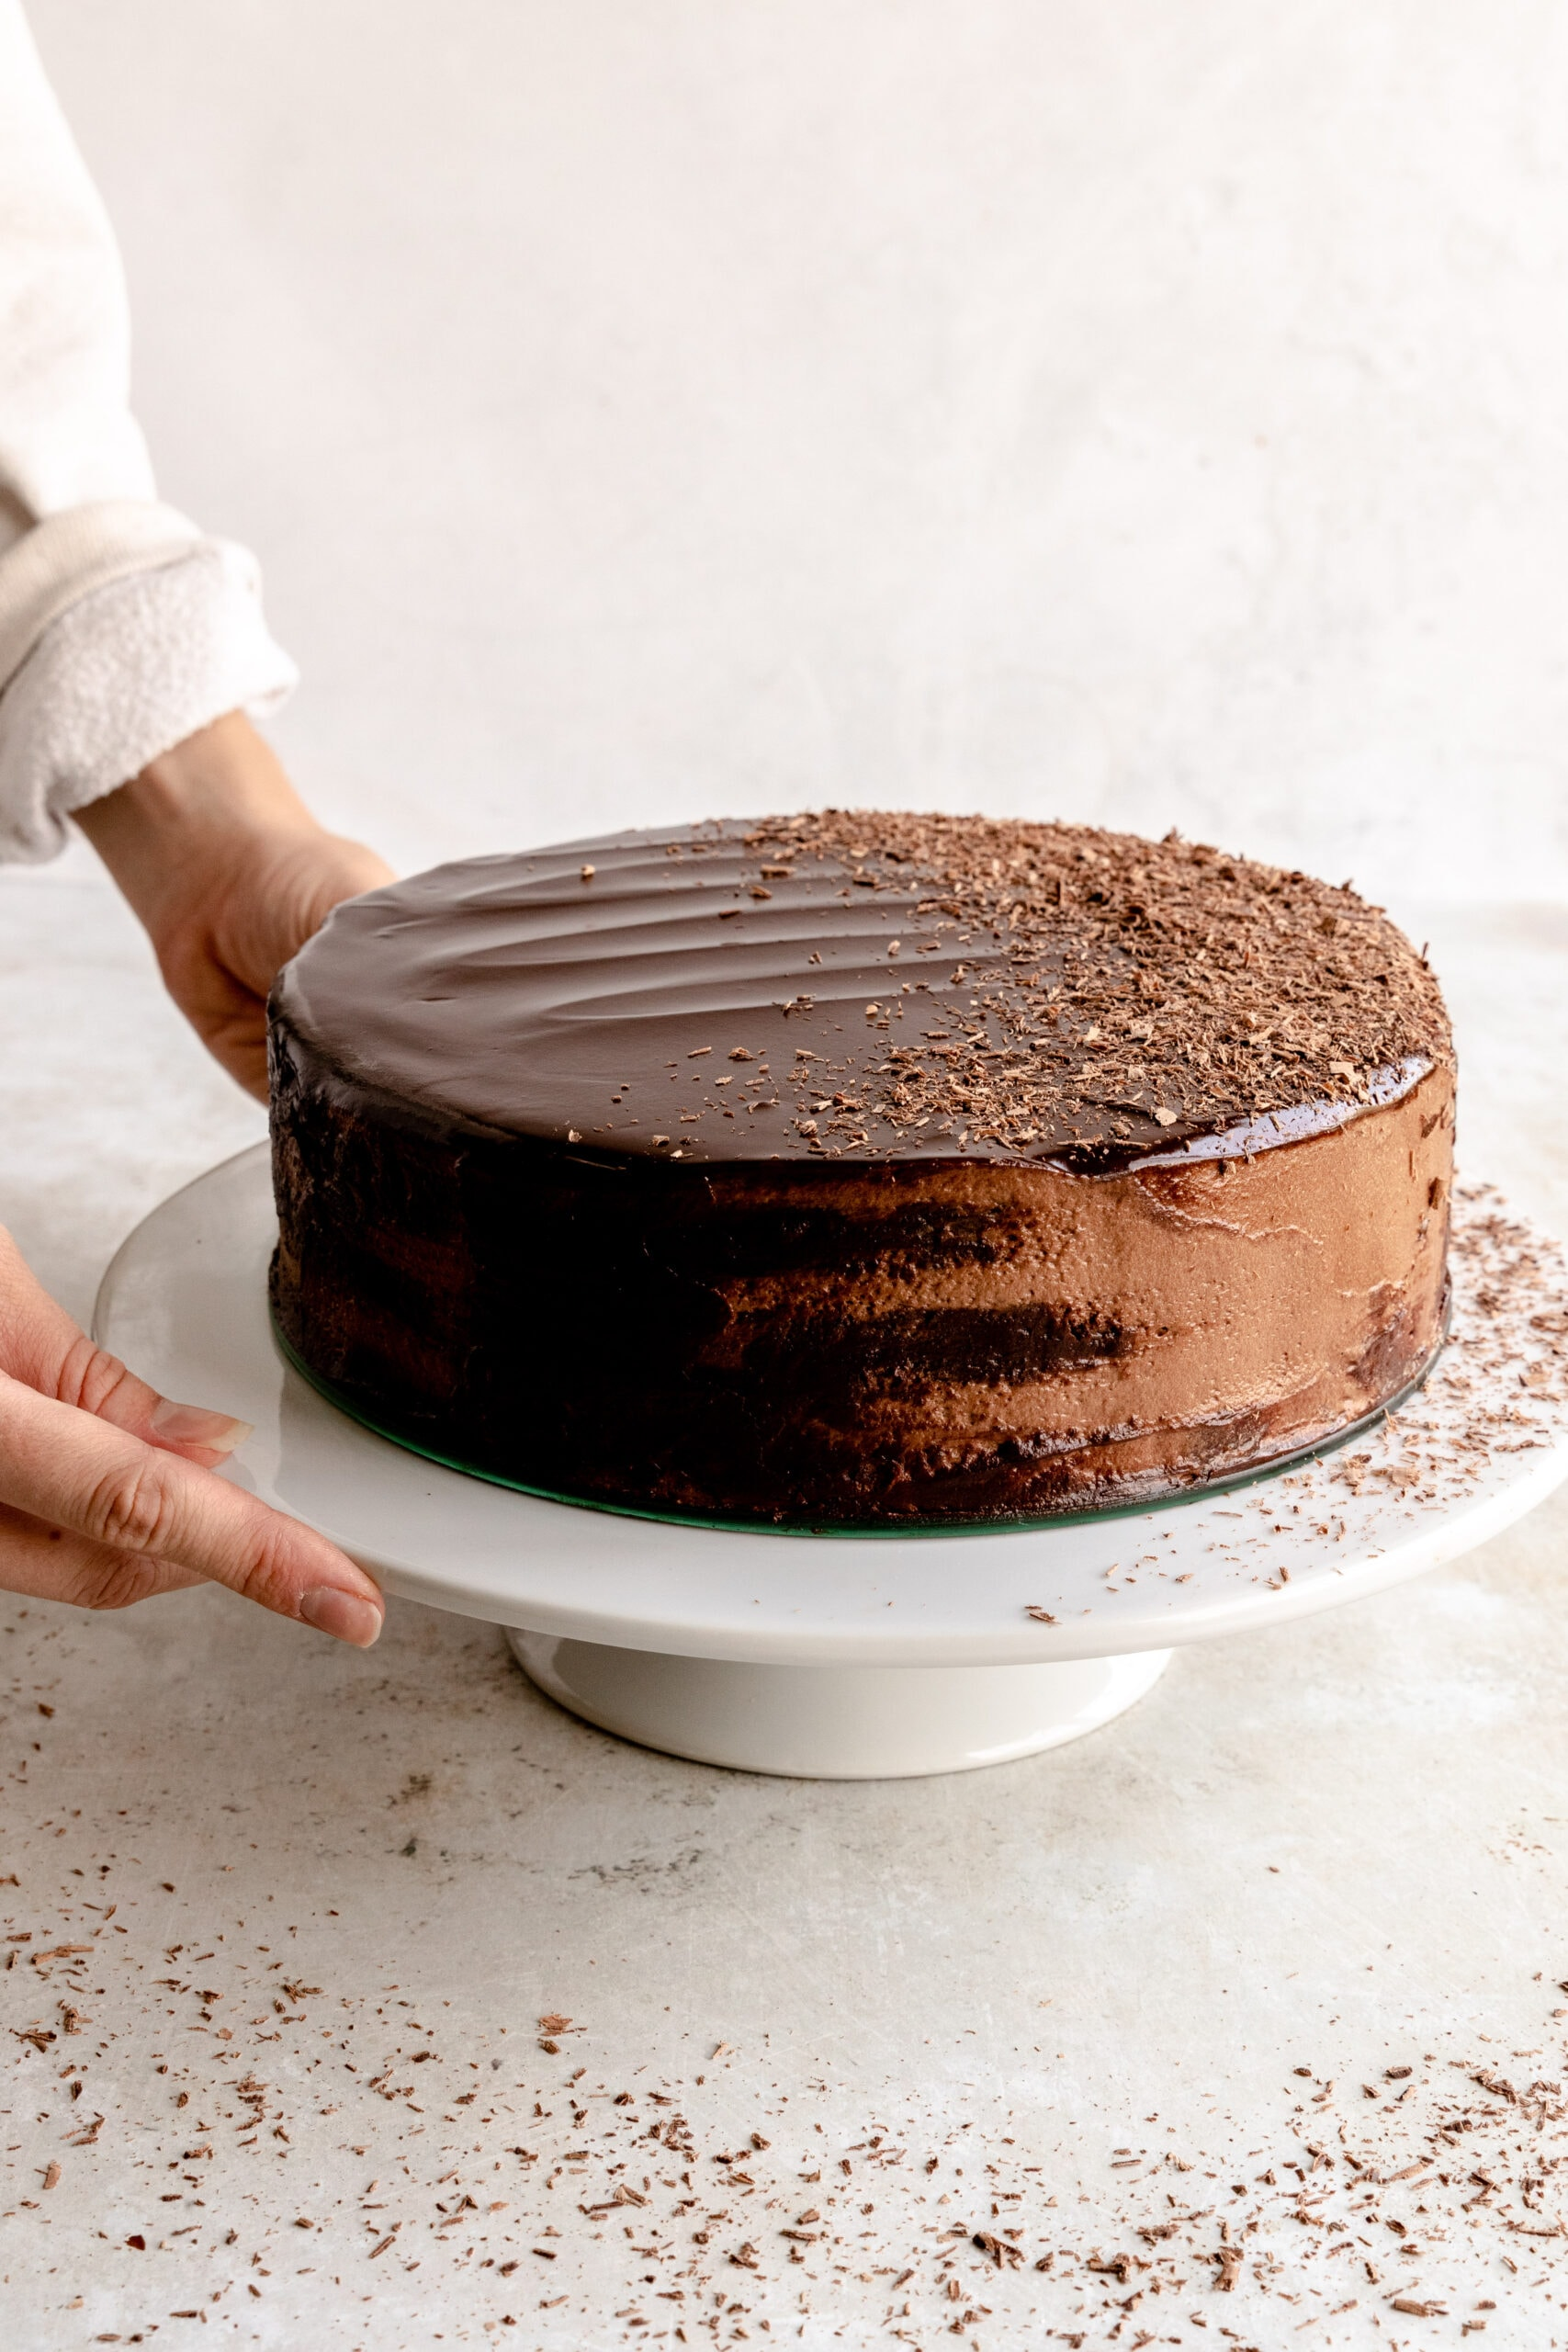 Image of hands holding a white cake stand with the chocolate mousse torte on top.